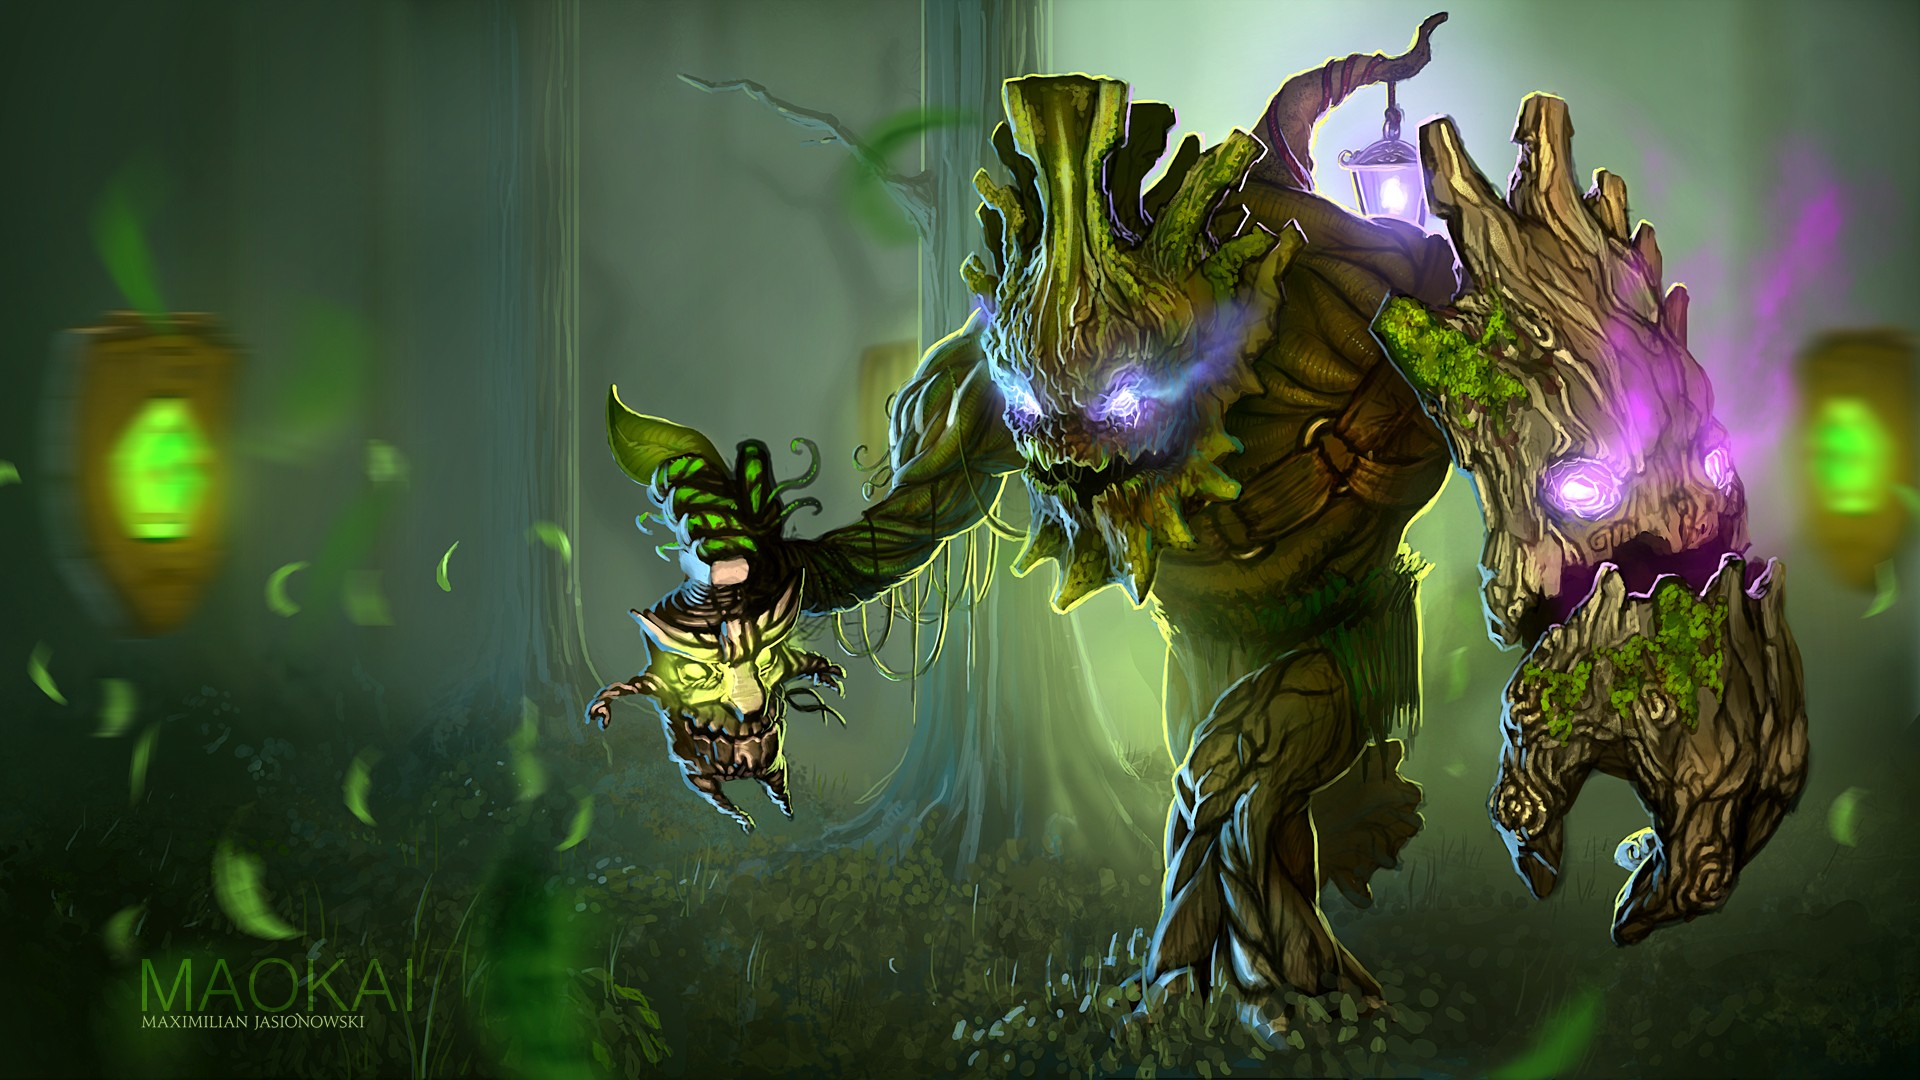 Hd Wallpapers Artworks For League Of: 20 Maokai (League Of Legends) HD Wallpapers